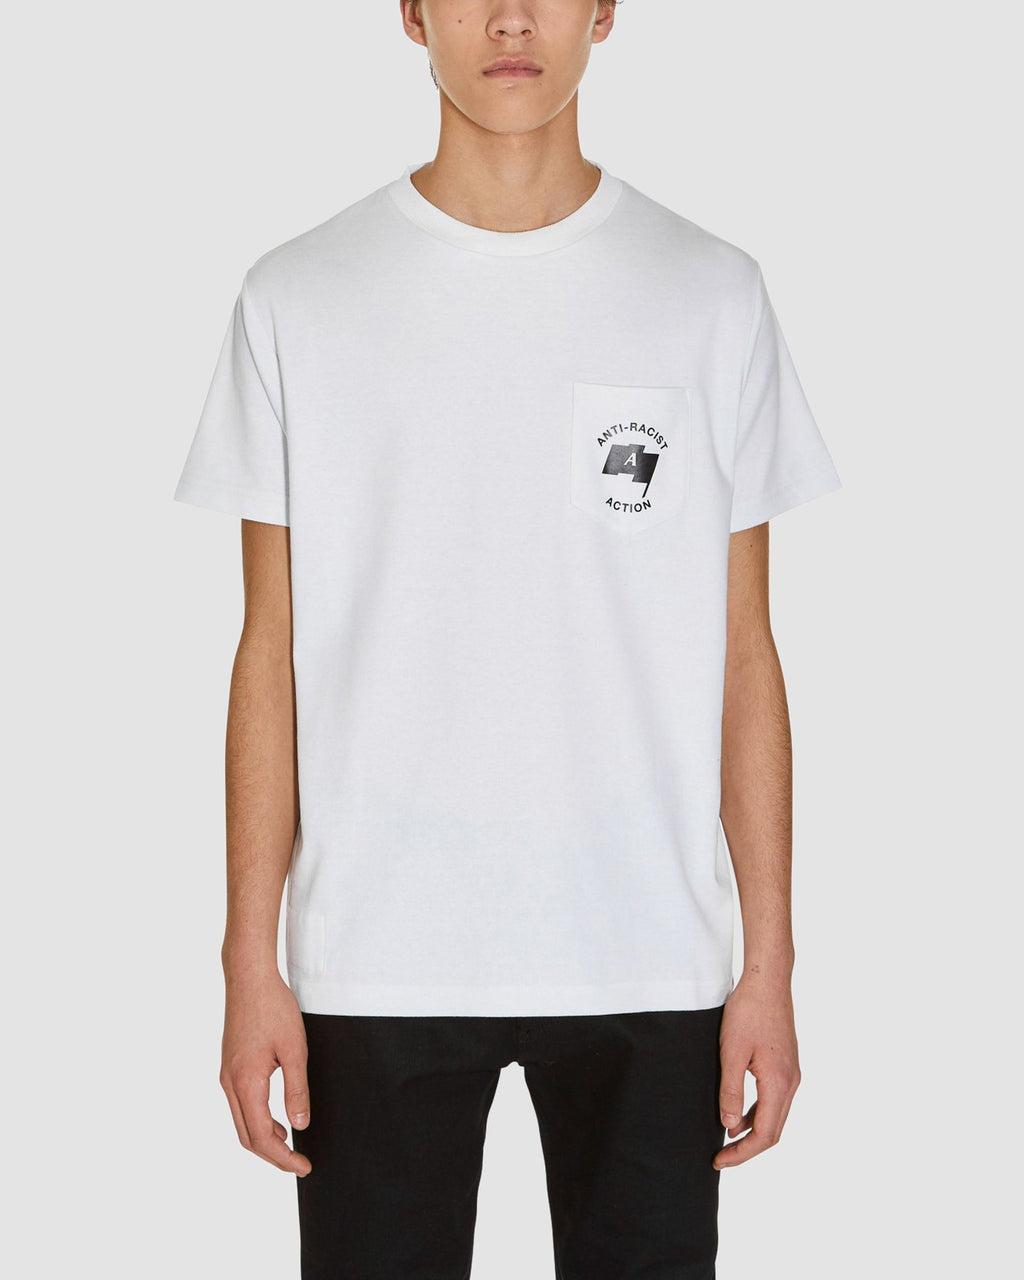 ANTI RACIST SS POCKET TEE